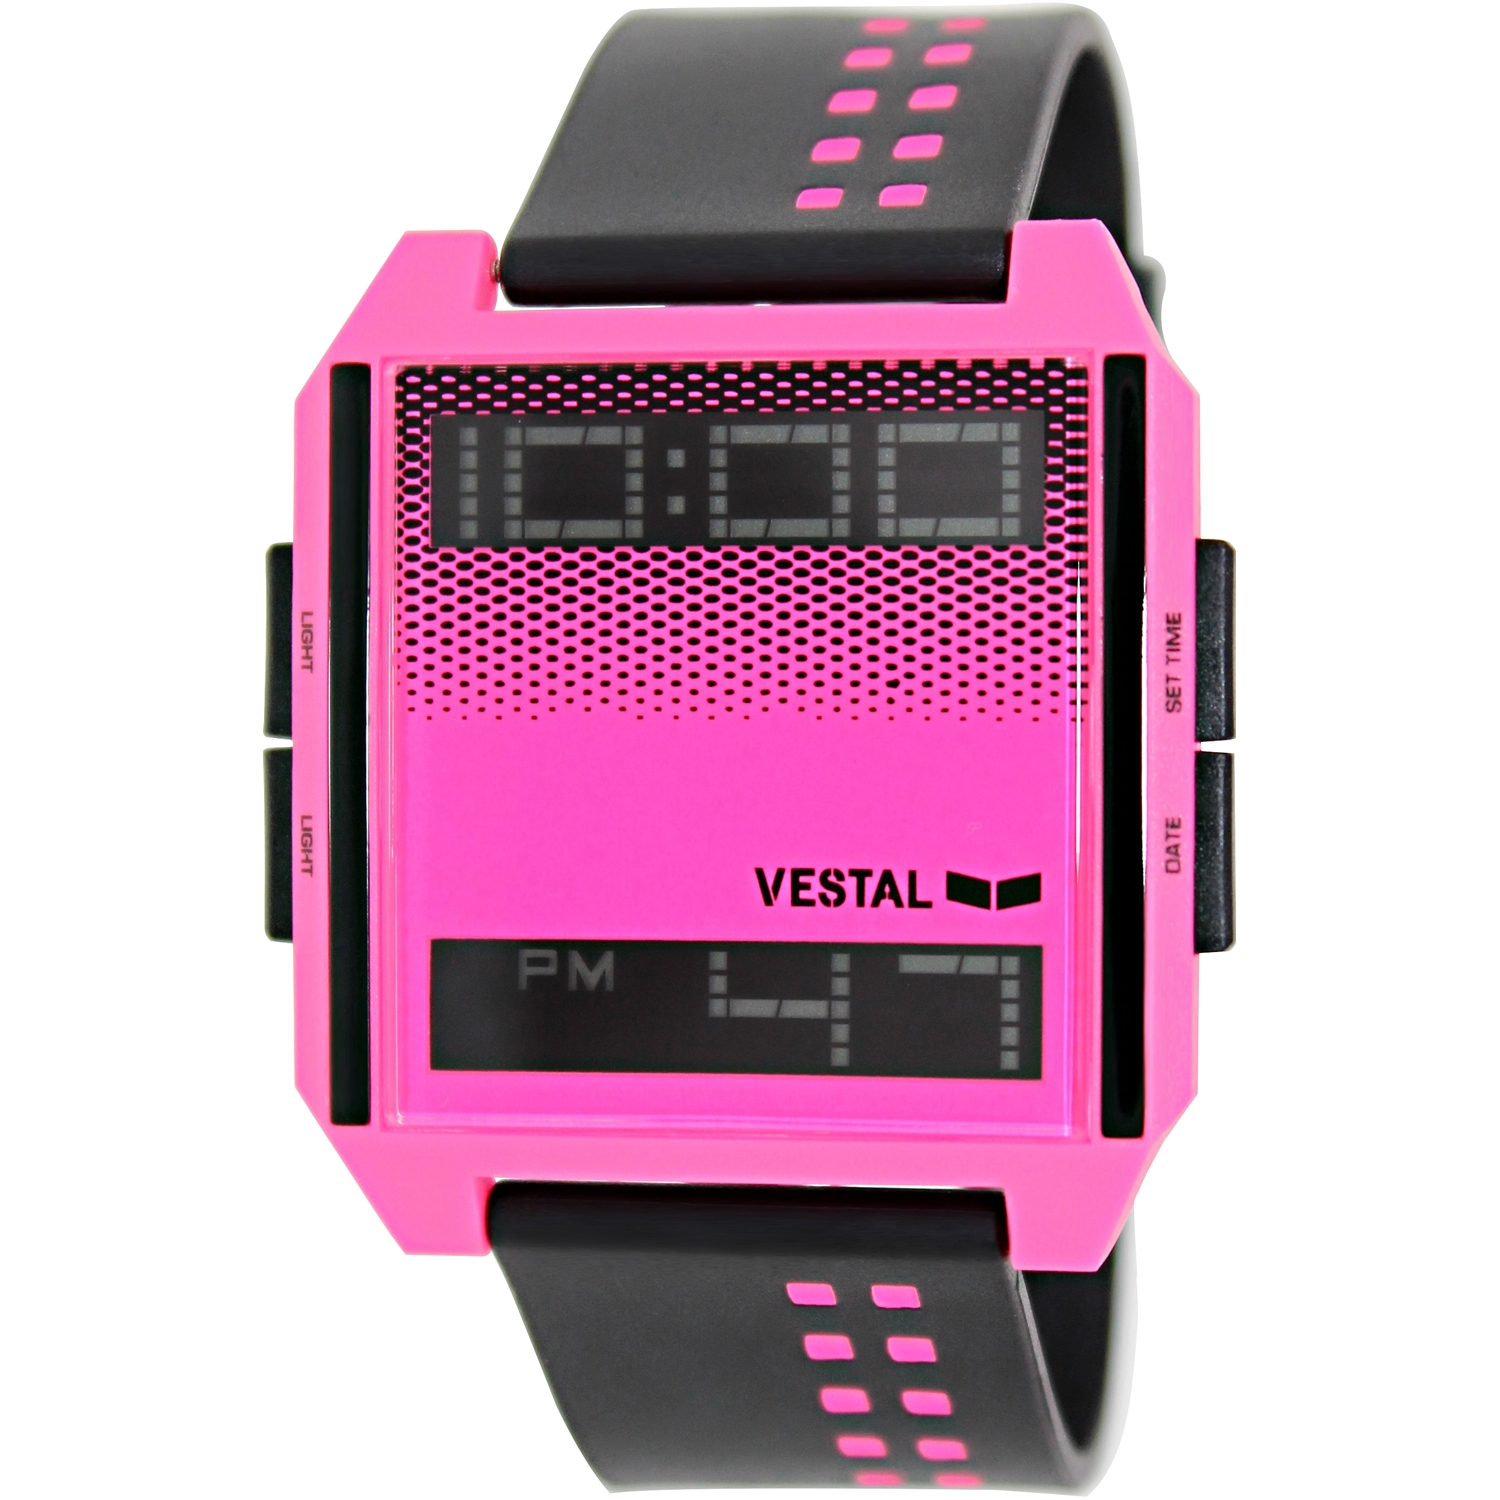 Vestal Women's Digichord DIG025 Digital Plastic Quartz Watch